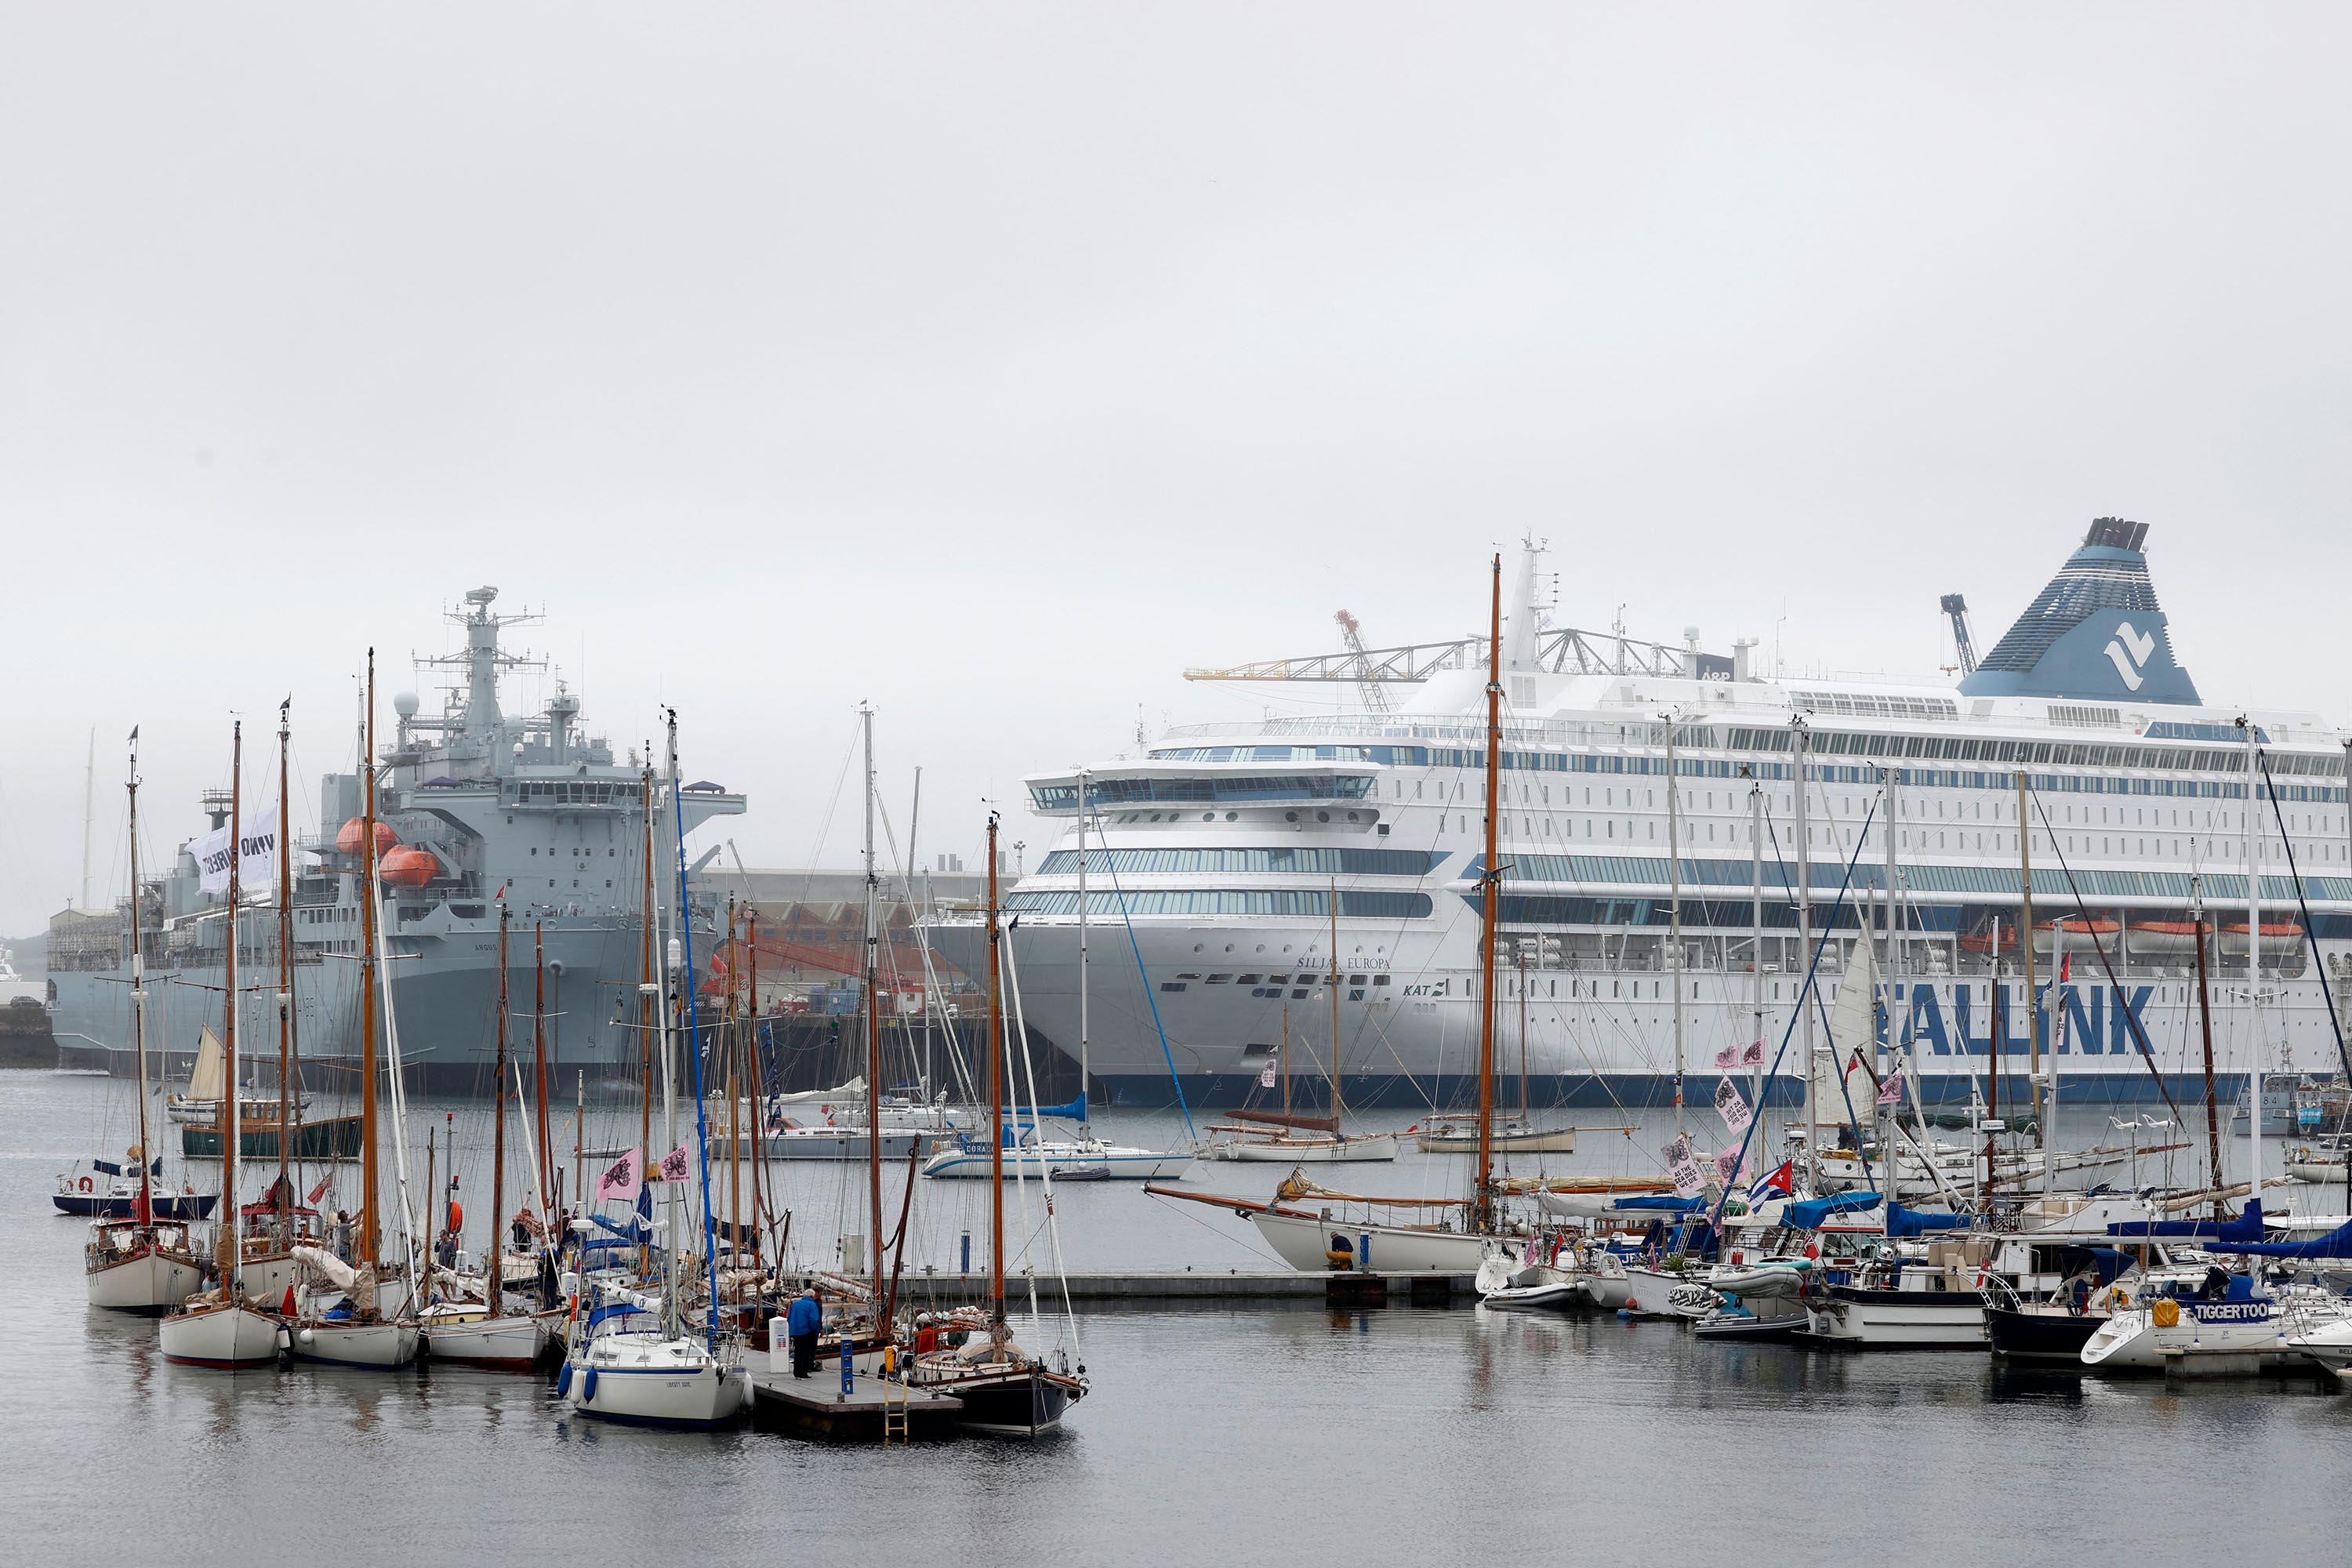 The MS Silja Europa, (R), which is housing police officers, is berthed in the harbor at Falmouth, Cornwall on June 10.